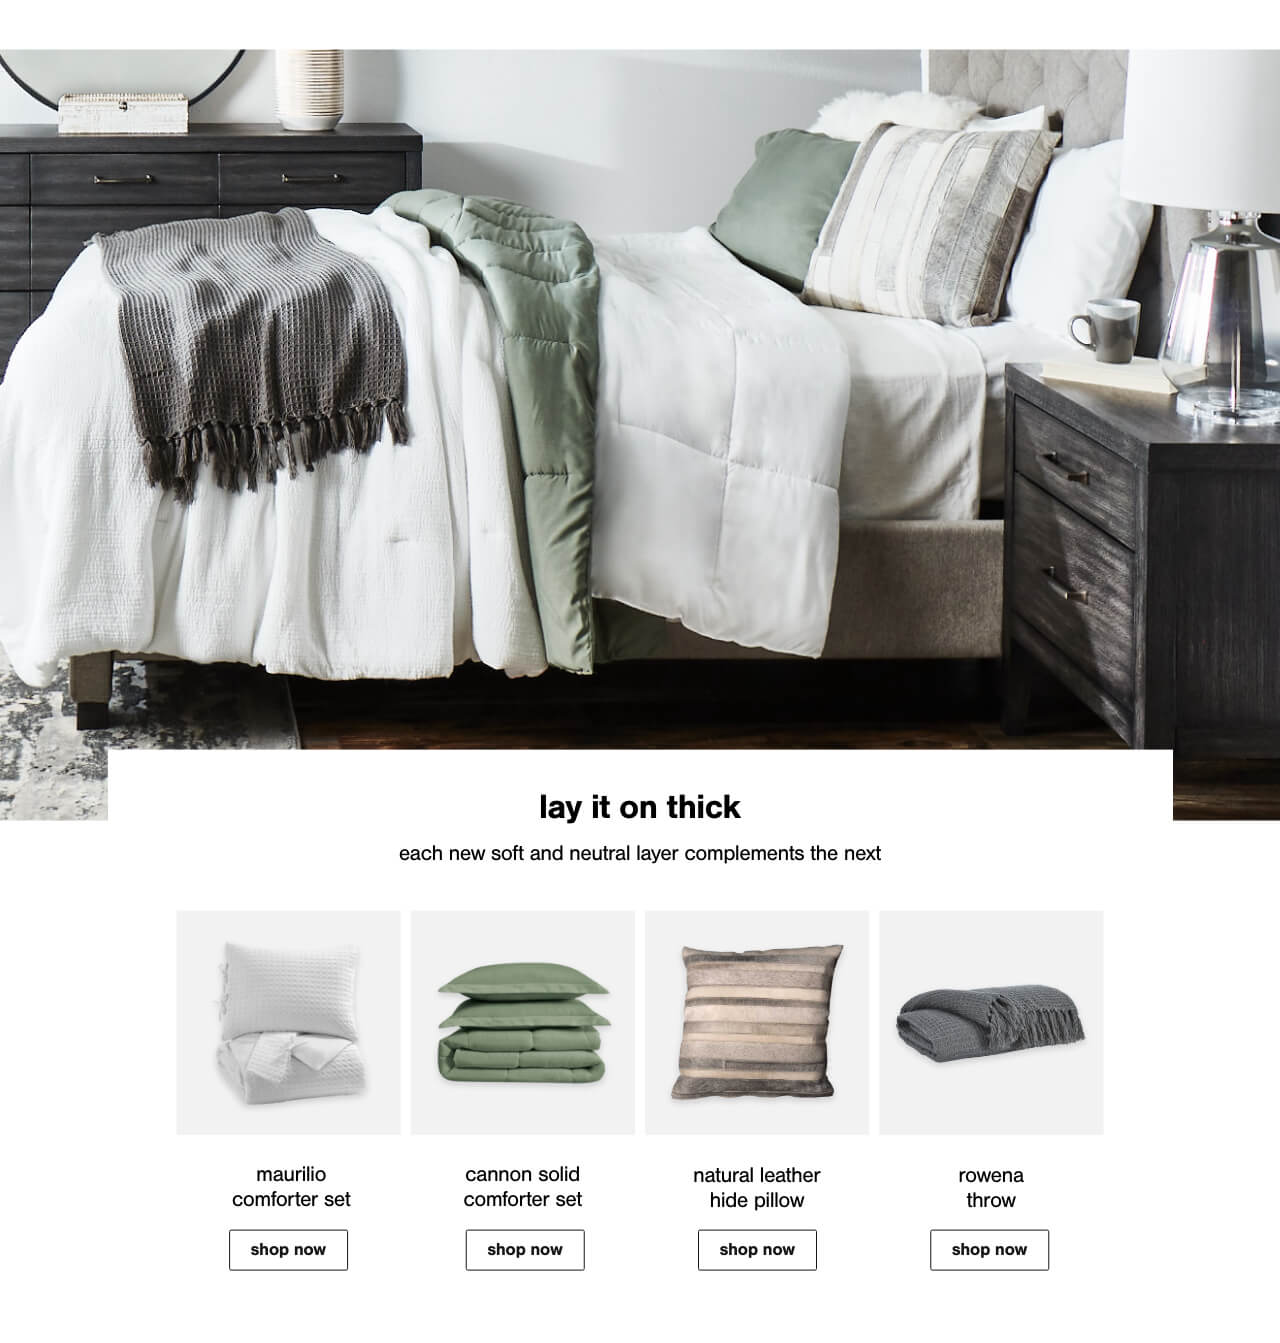 Maurilio Comforter Set, Cannon Solid Comforter Set, Natural Leather Hide Pillow,Rowena Throw